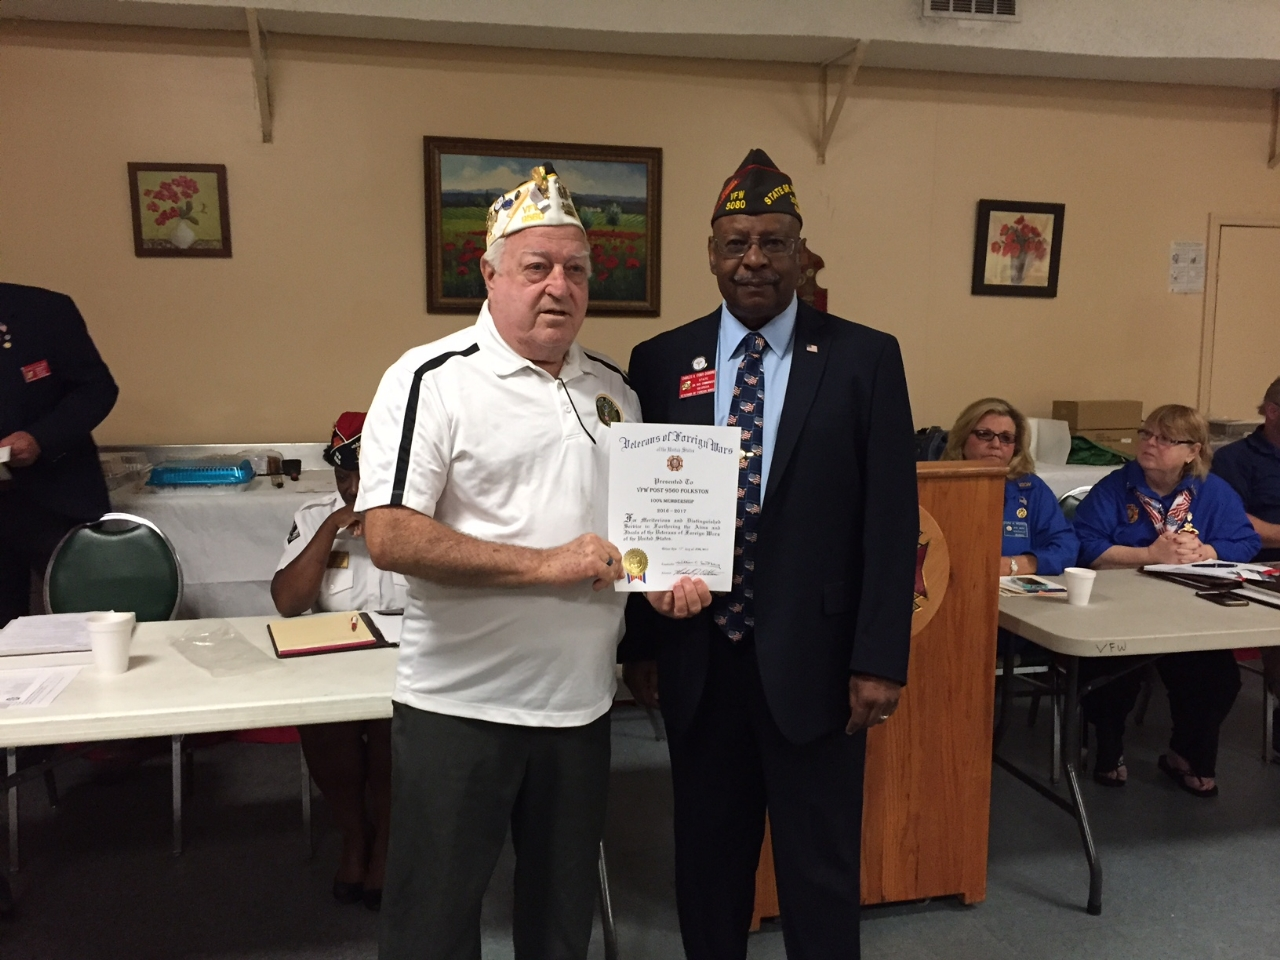 District 7 meeting on Sept. 23rd 2017 at VFW Post 8385 Kings Bay